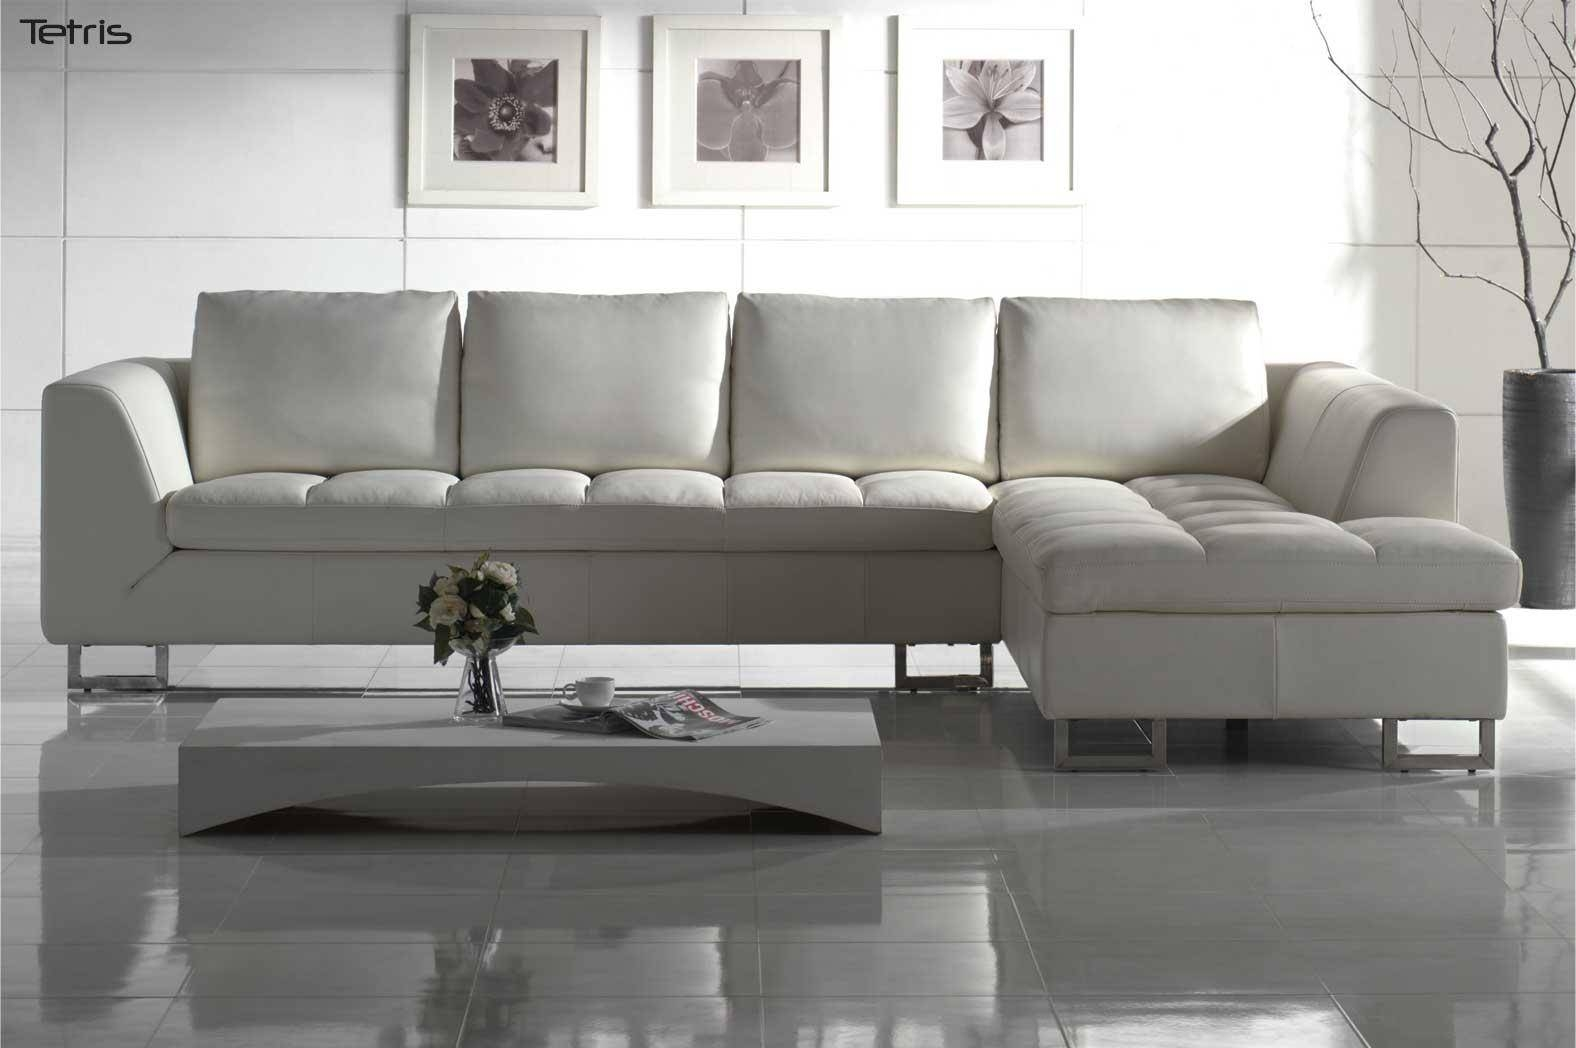 Sacramento Espresso Leather Sectional Sofa Set - S3Net - Sectional intended for Expensive Sectional Sofas (Image 25 of 30)